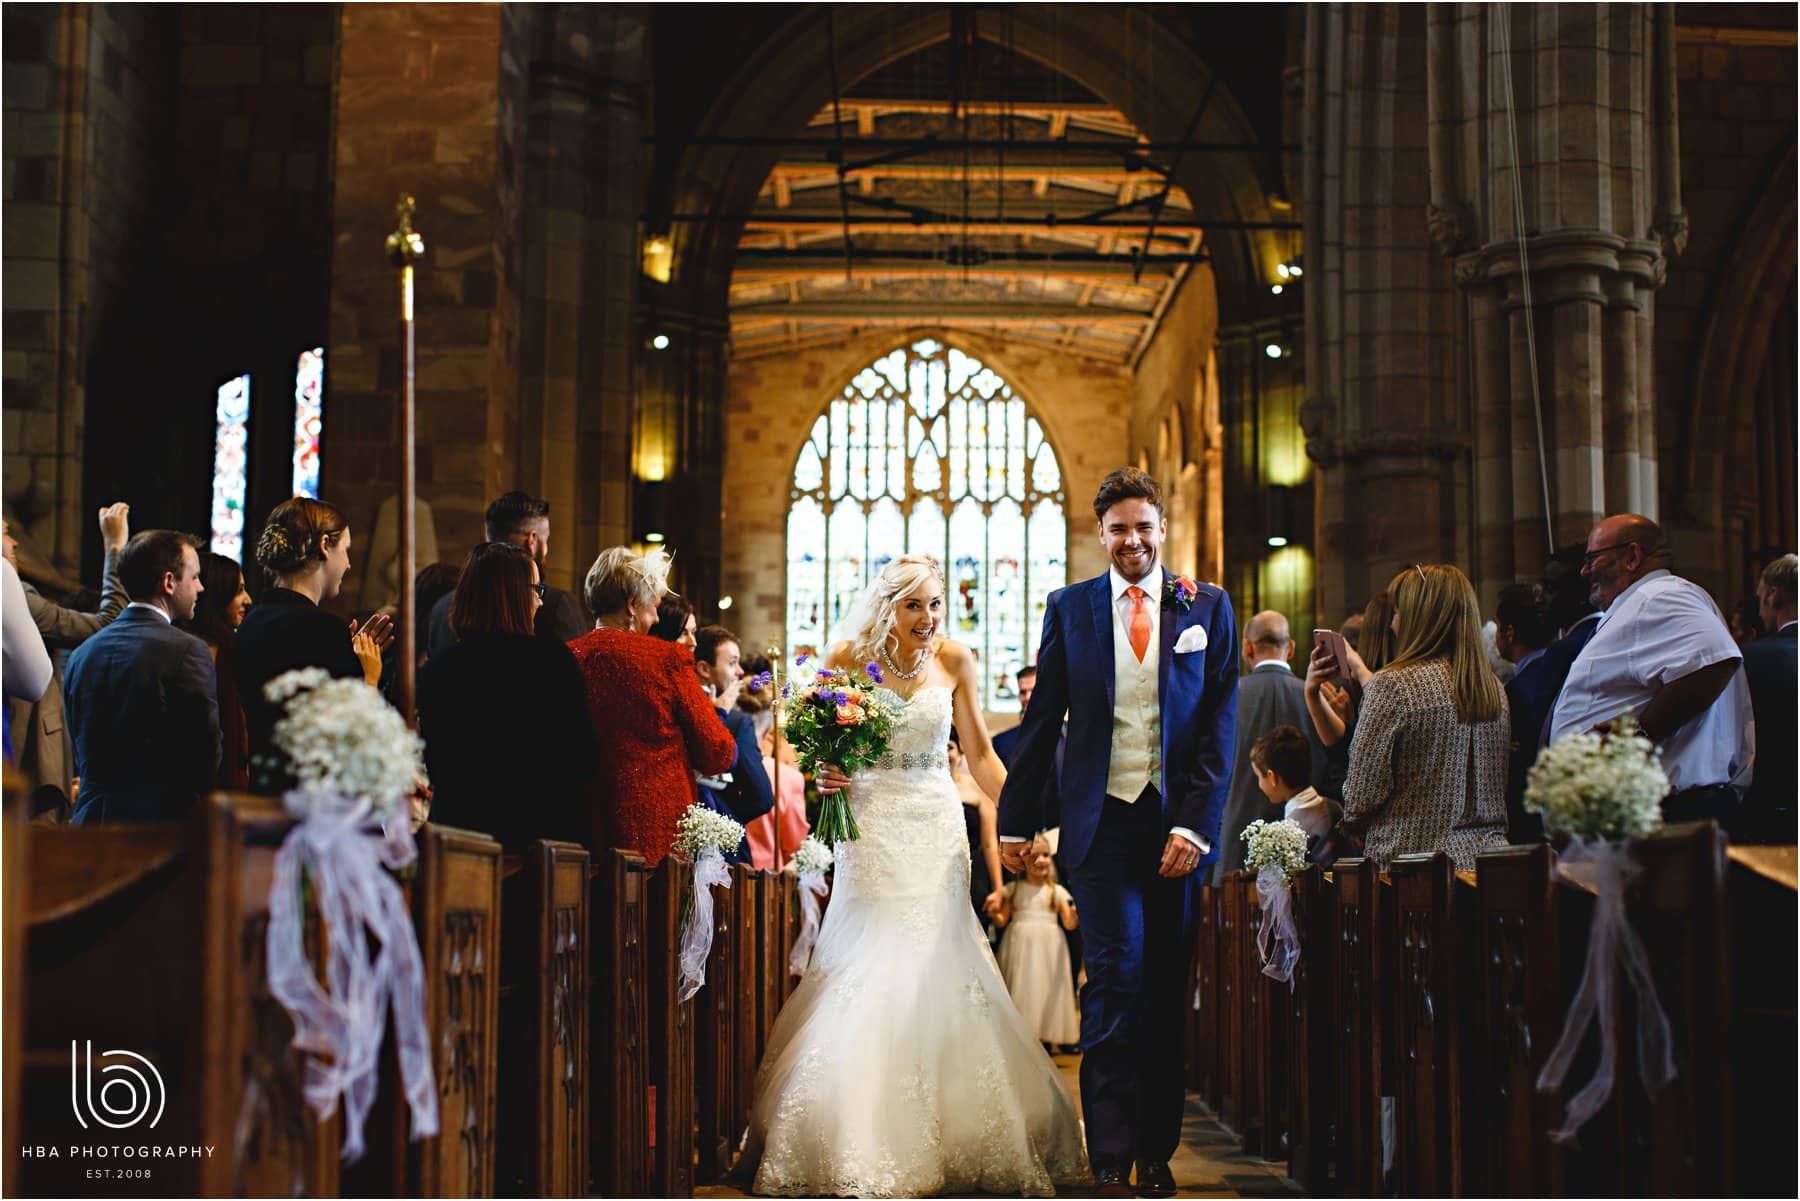 the bride and groom leaving the church